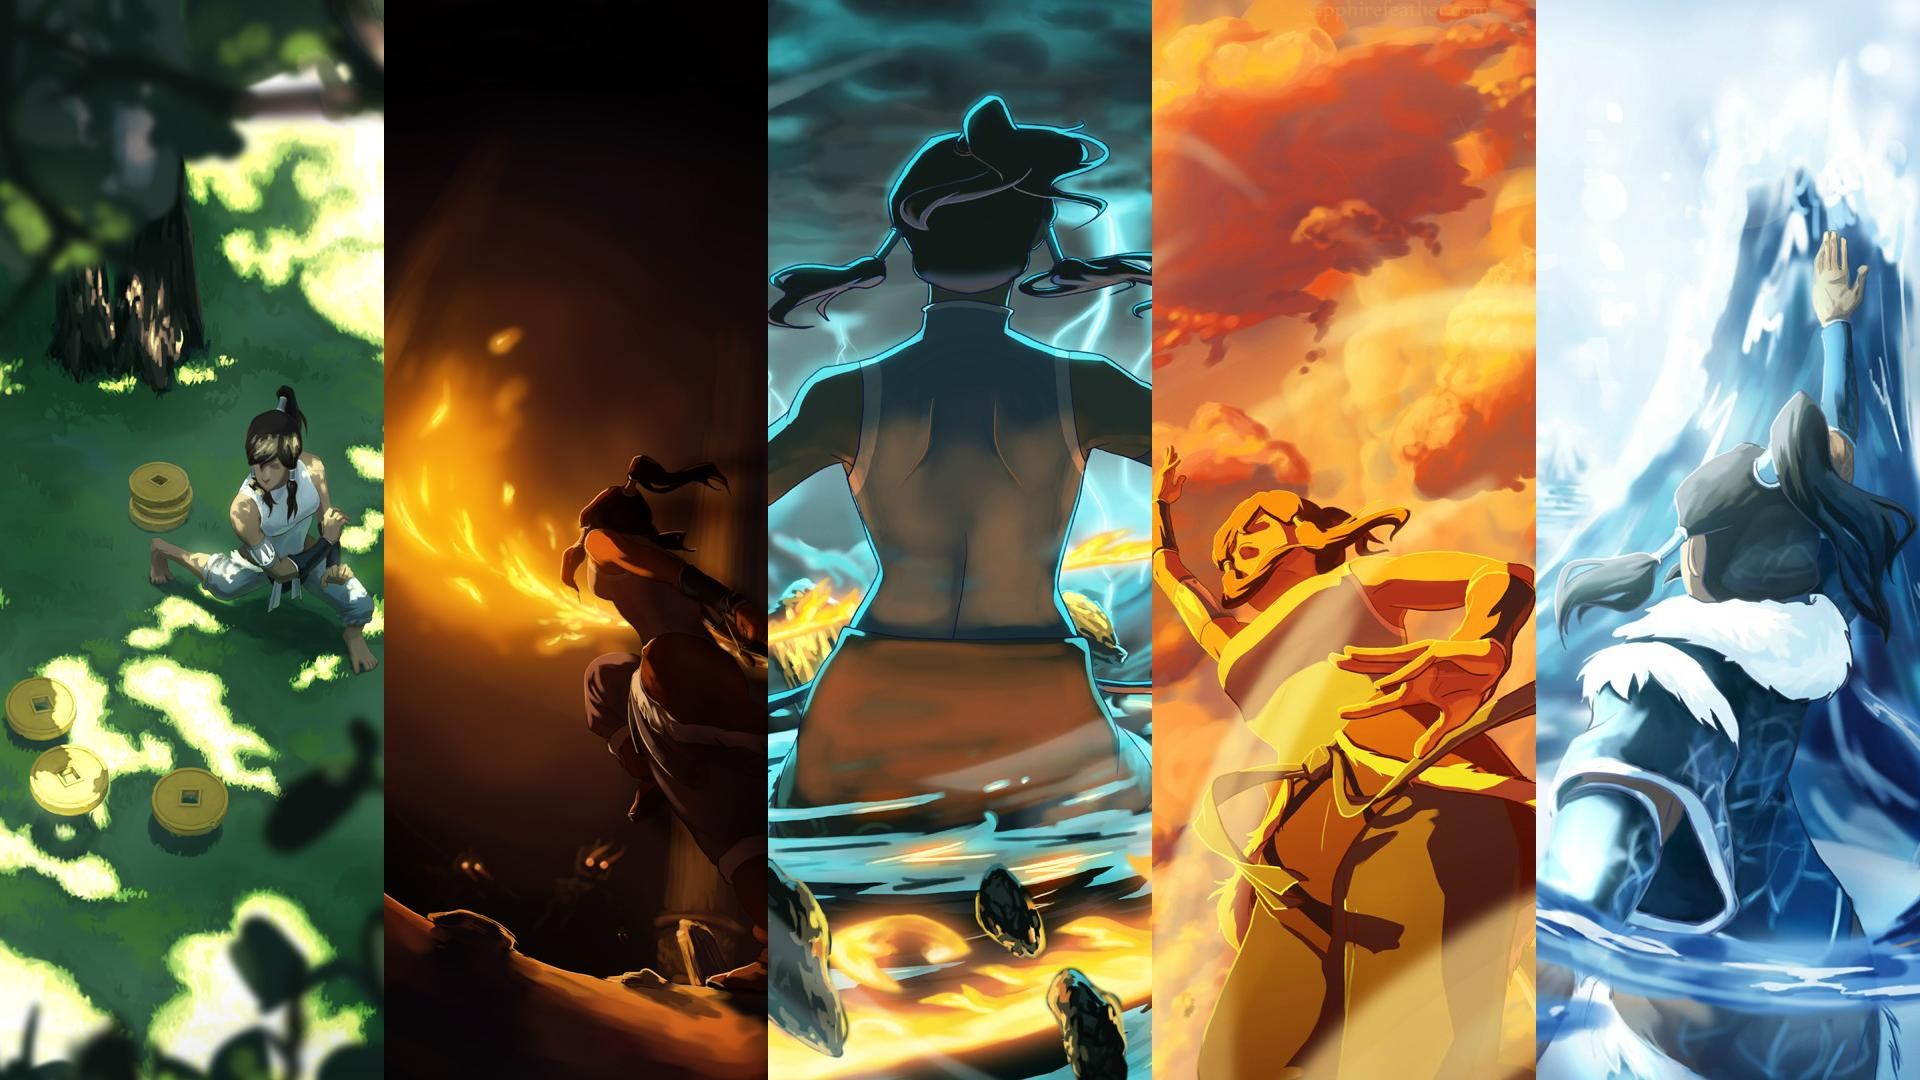 1920x1080-free-screensaver-for-avatar-the-legend-of-korra-wallpaper-wp380793